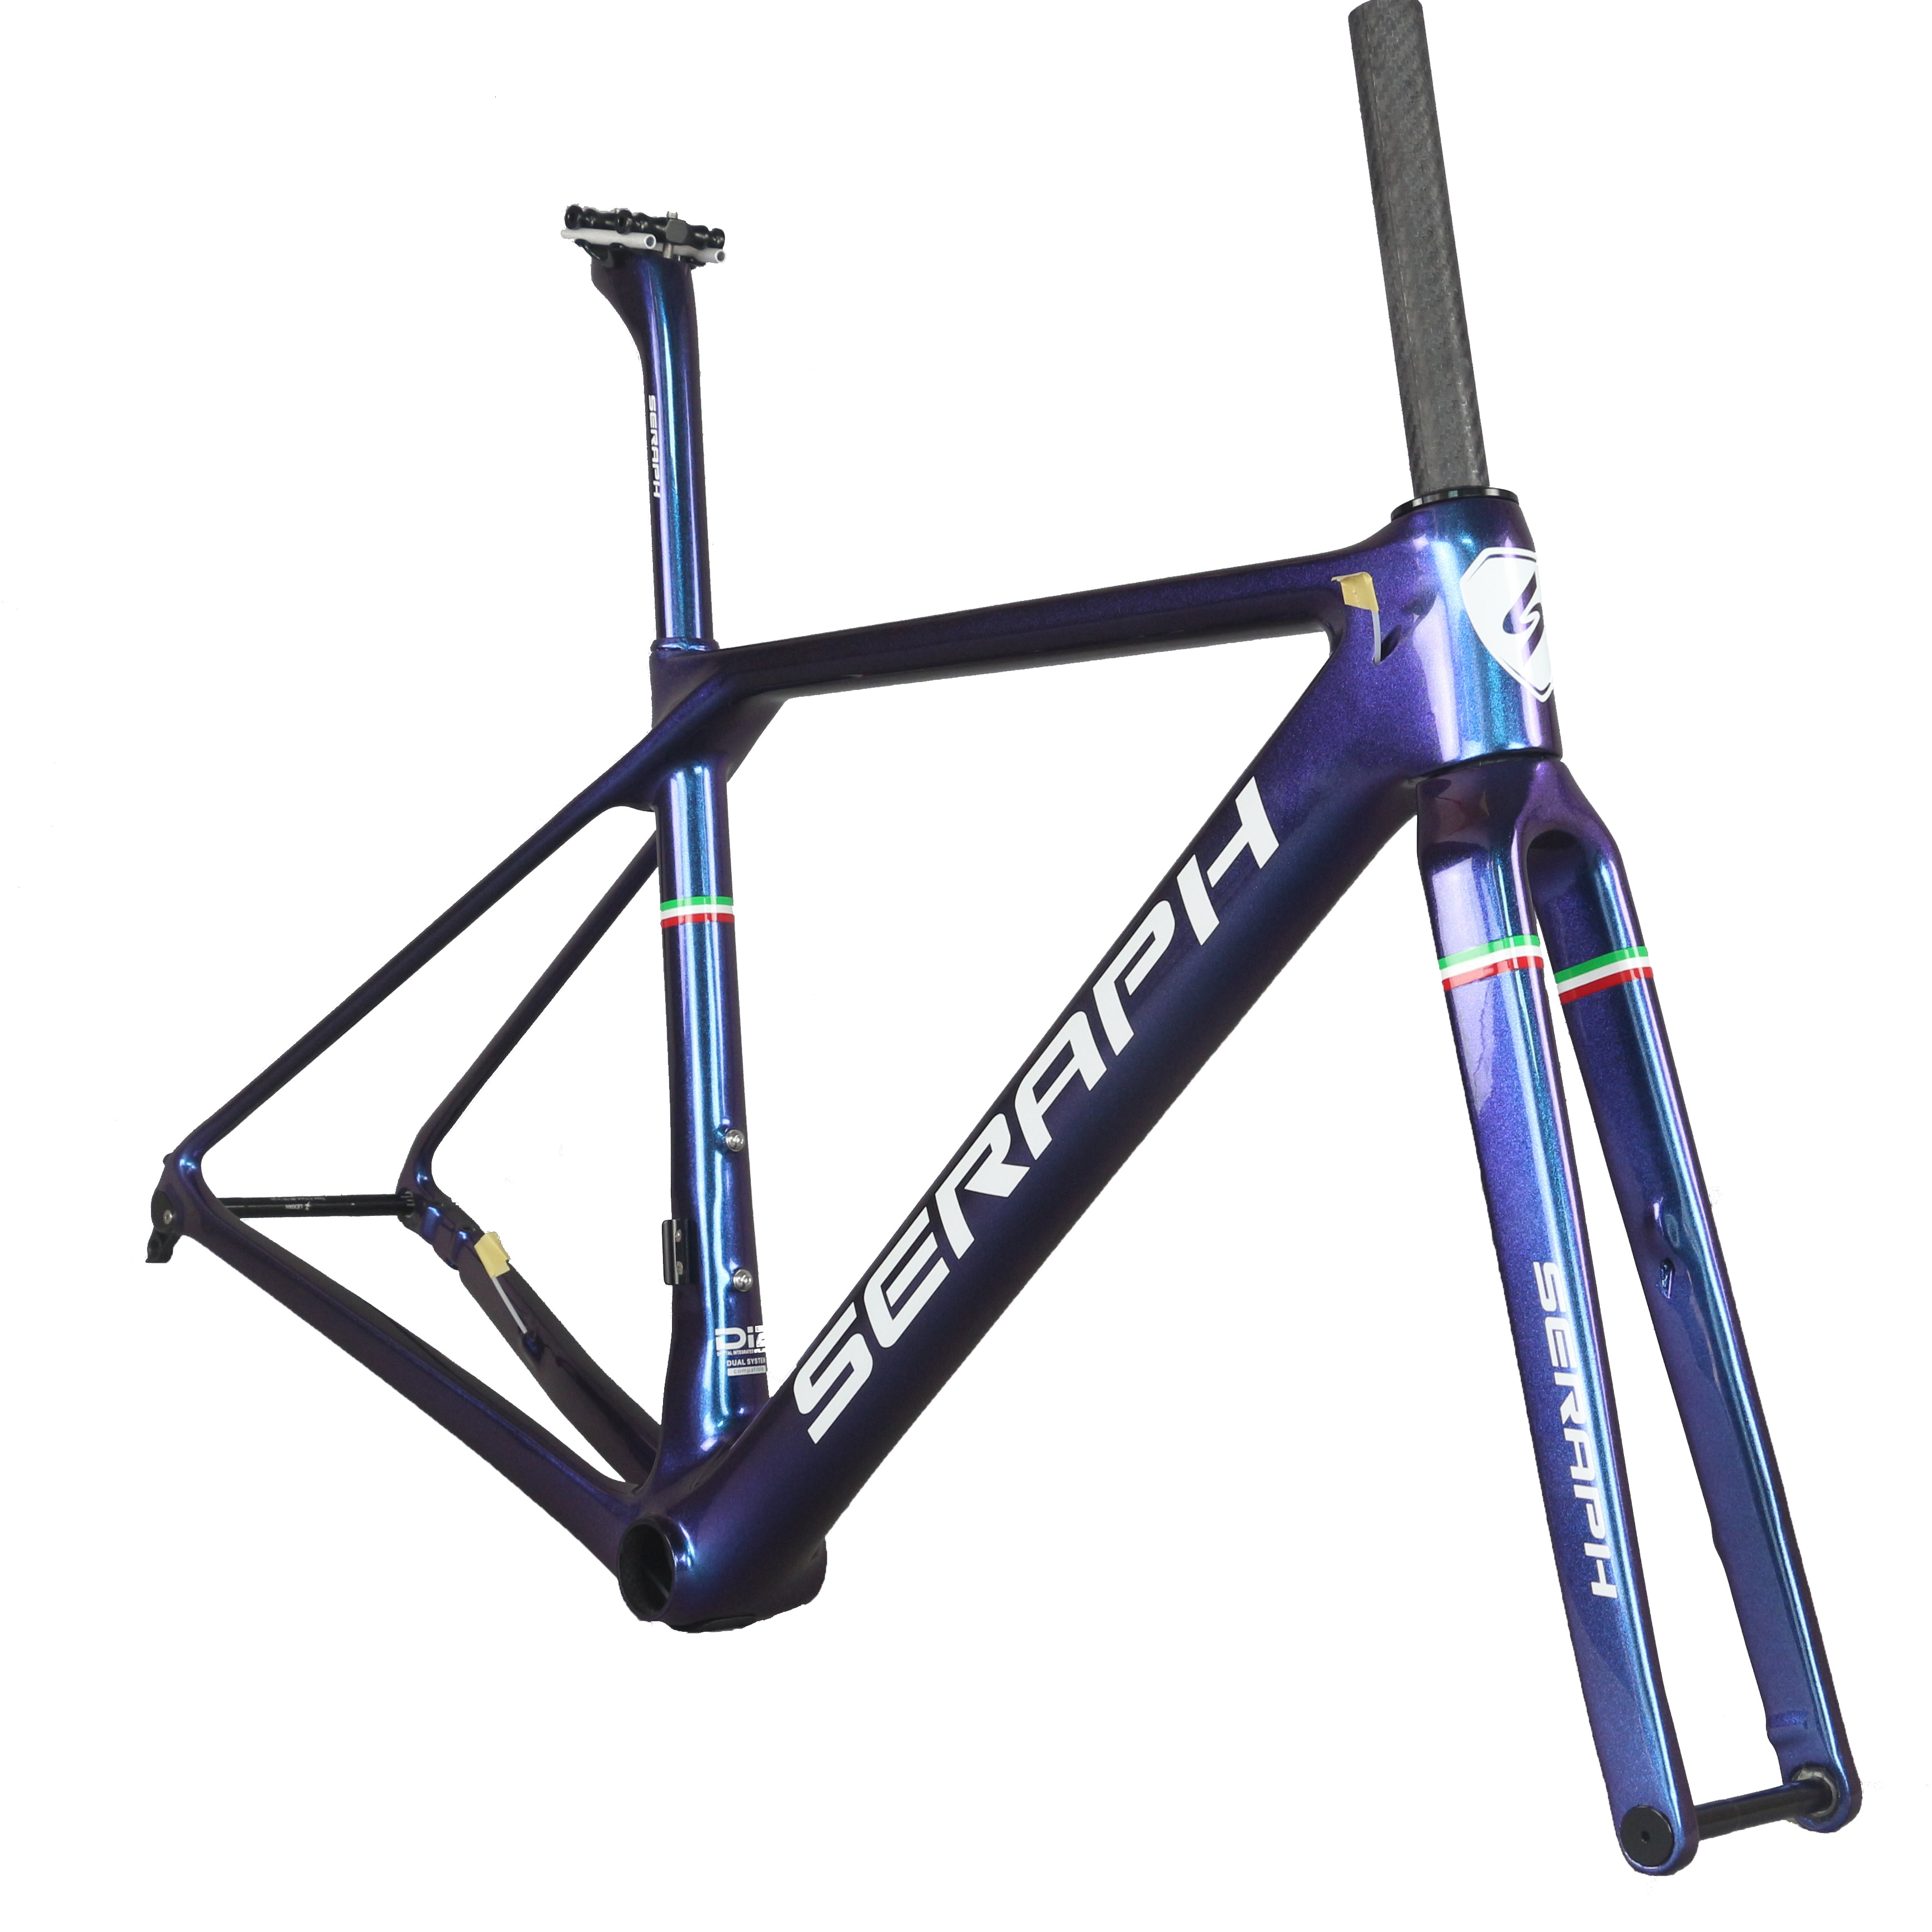 2019 SERAPH Chameleon Spray-painted Seat Tube 27.22mm Seat Post Road Bike Frame FM009 Toray Carbon Fiber T1000 Can Be Customized